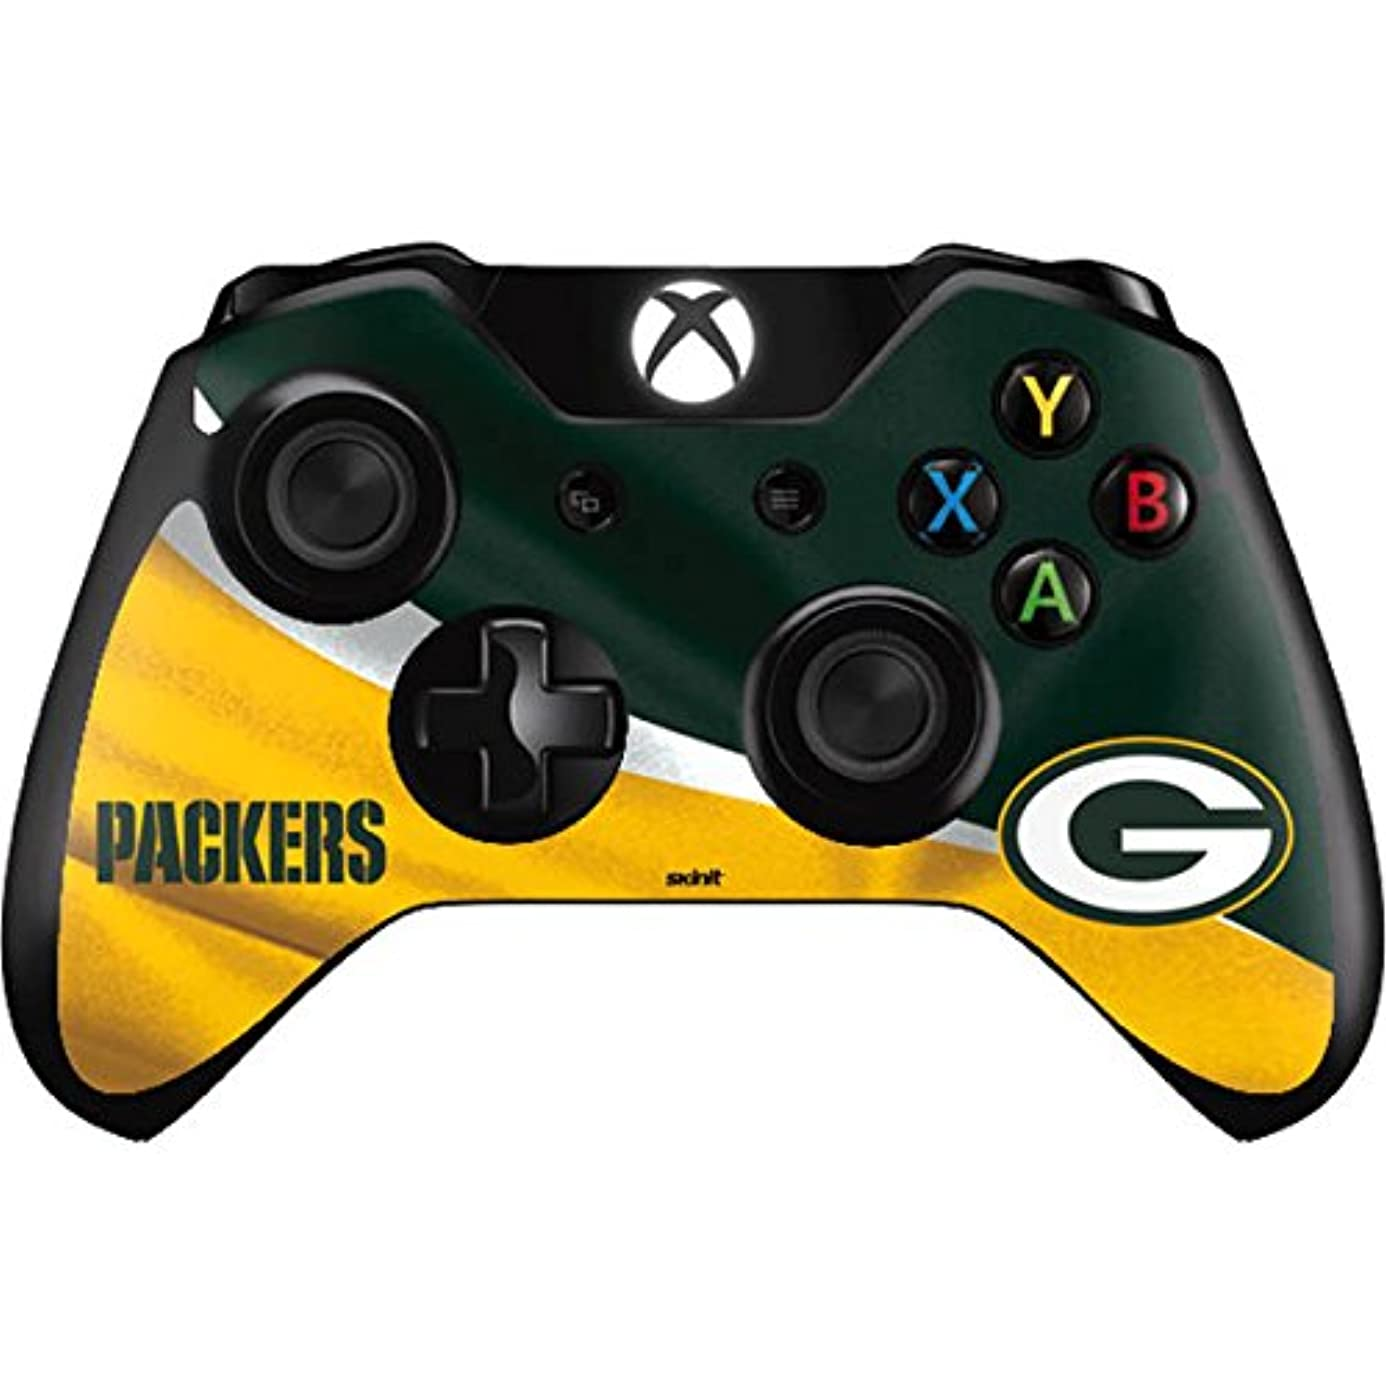 Skinit Green Bay Packers Xbox One Controller Skin - Officially Licensed NFL Gaming Decal - Ultra Thin, Lightweight Vinyl Decal Protection